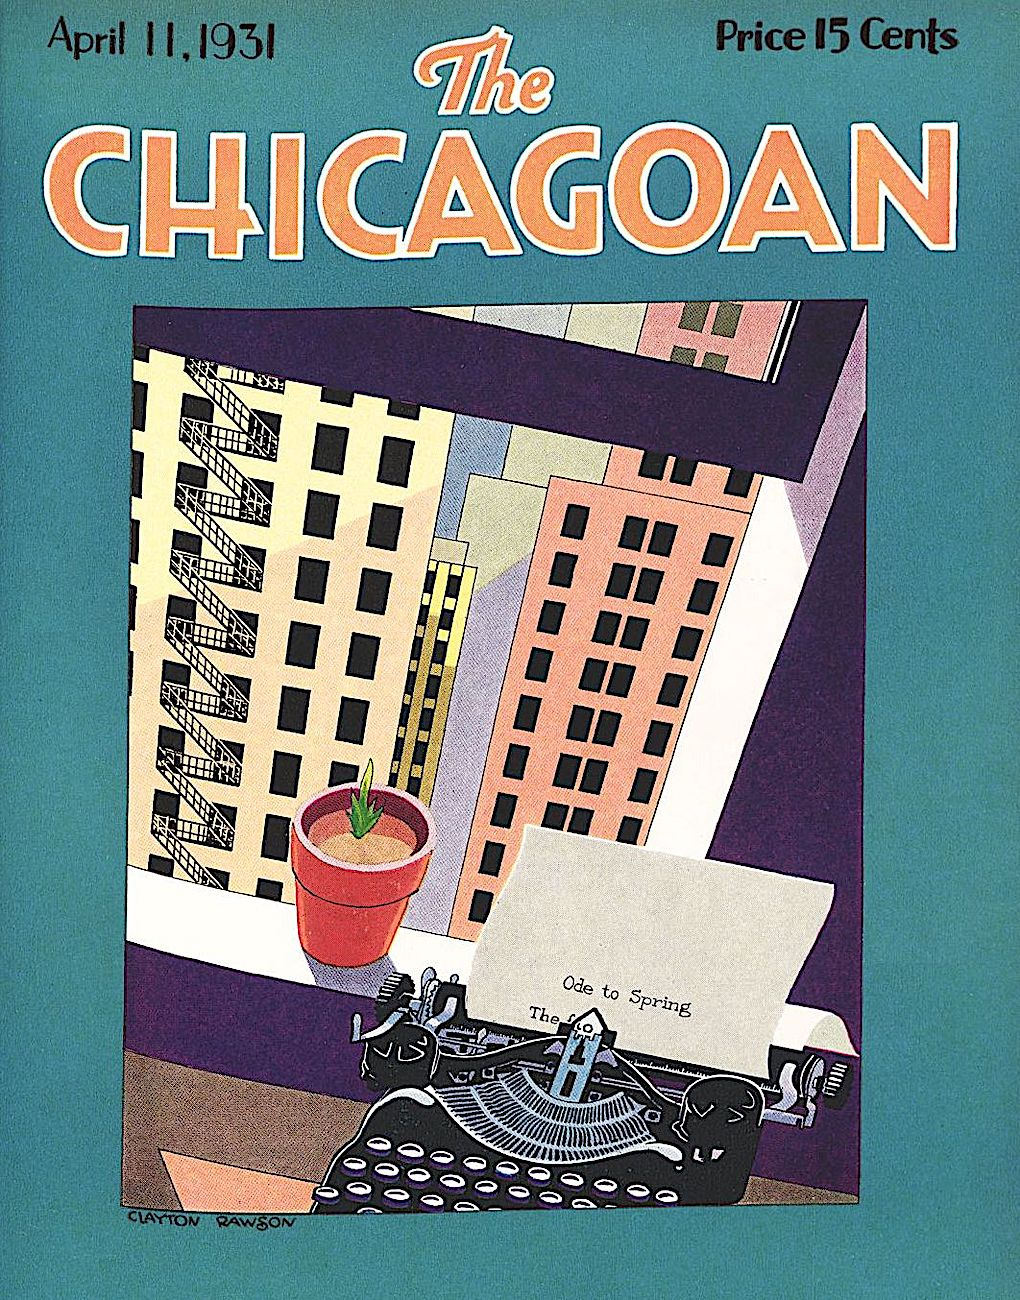 a Clayton Rawson illustration for The Chicagoan magazine, looking out an urban windowa in Spring 1931